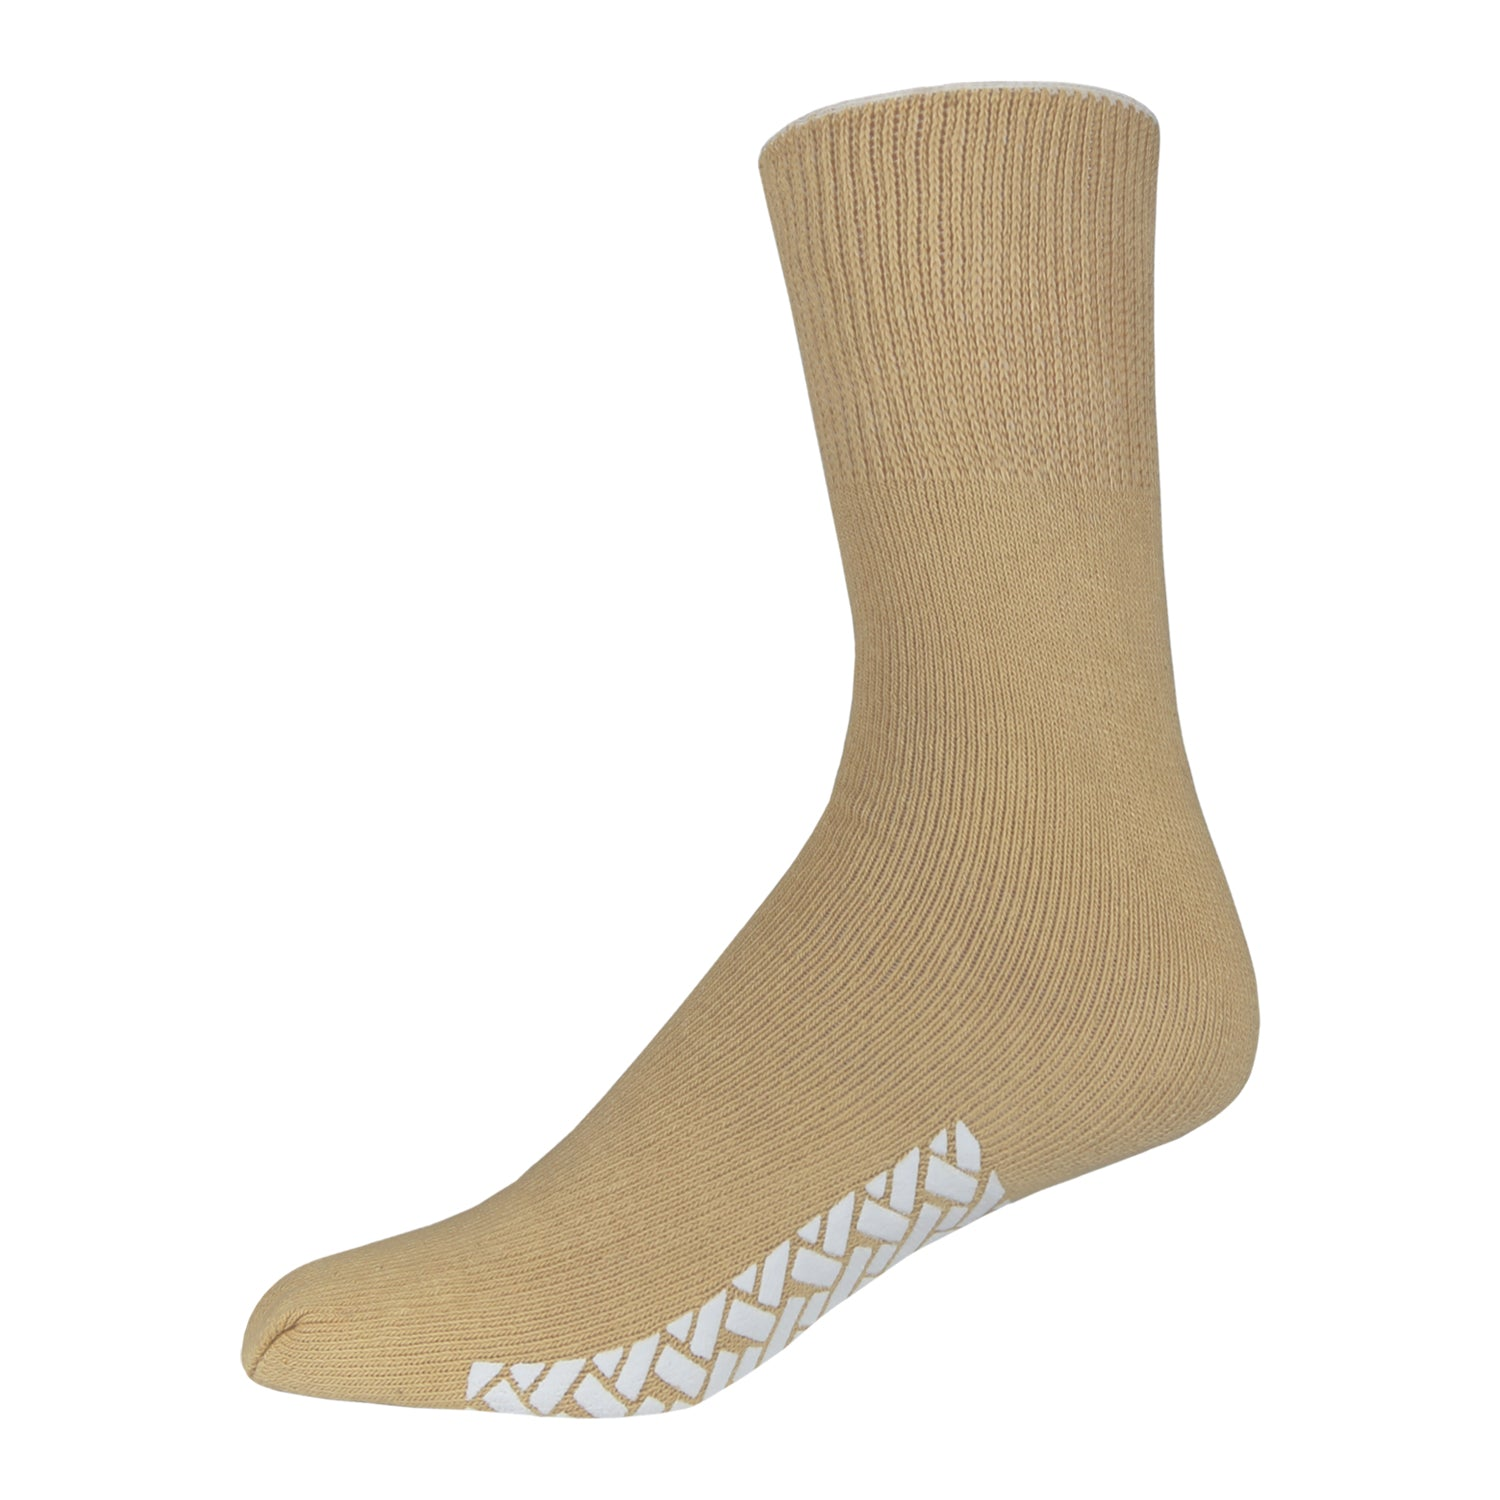 Brown Women's Hospital Socks With The Rubber On The Bottom Of Them And Loose Top